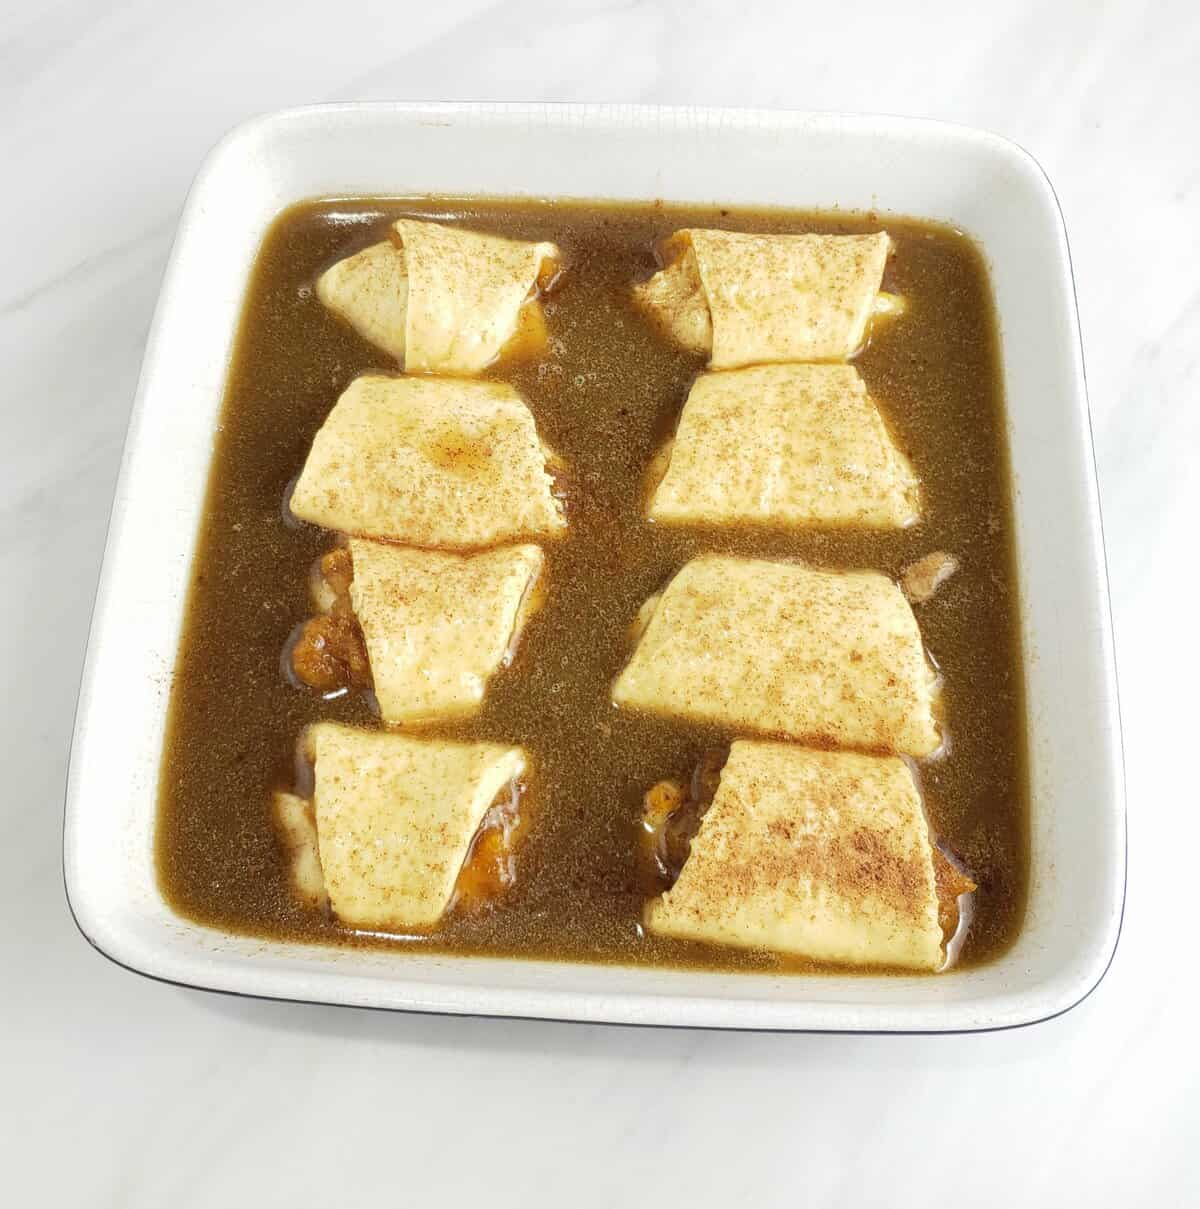 Unbaked crescent roll dough filled with pumpkin filling and brown sugar sauce in square dish